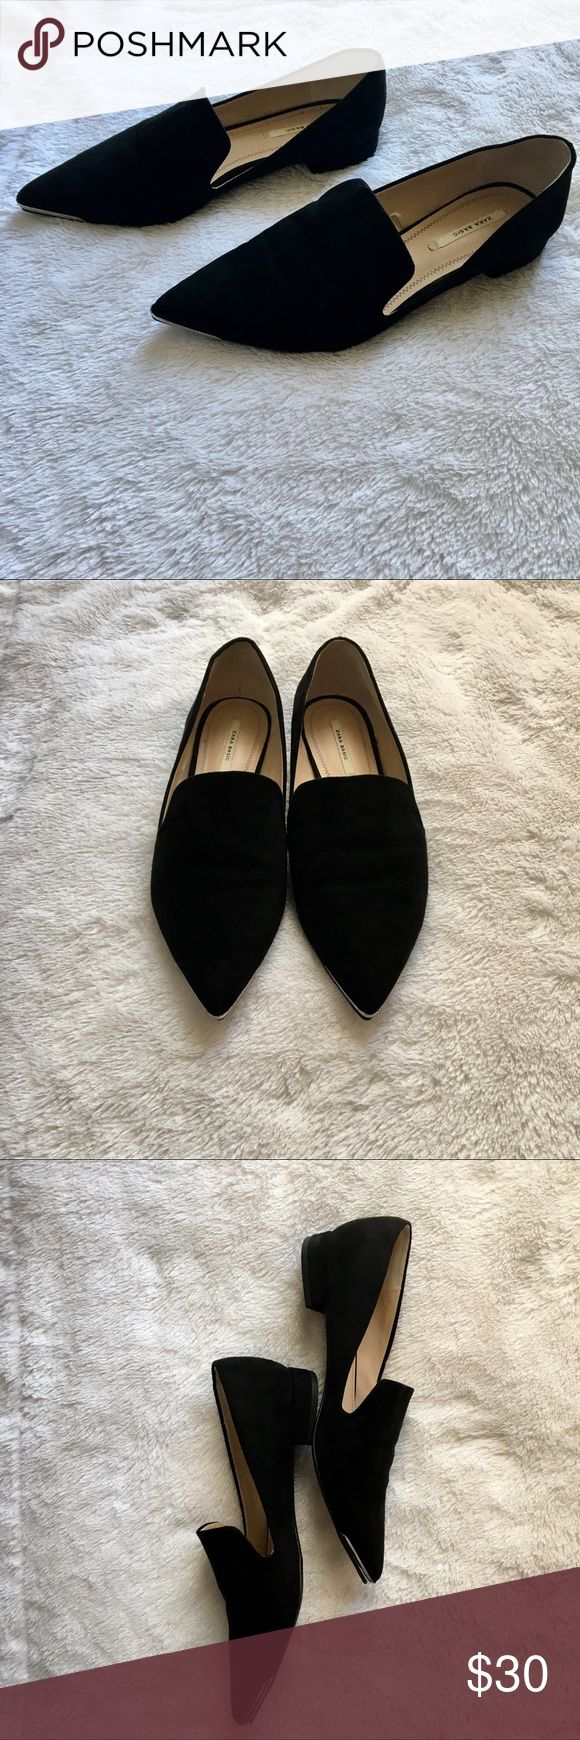 Zara Black Suede Flats Silver Cap Toe Zara Basic Collection! •These on trend shoes are perfect for your wardrobe - wear with jeans or a pencil shirt!  •Silver caps on toe •Worn a few times with small wear underneath silver cap toe - can't see when wearing •Refer to pictures for wear Zara Shoes Flats & Loafers